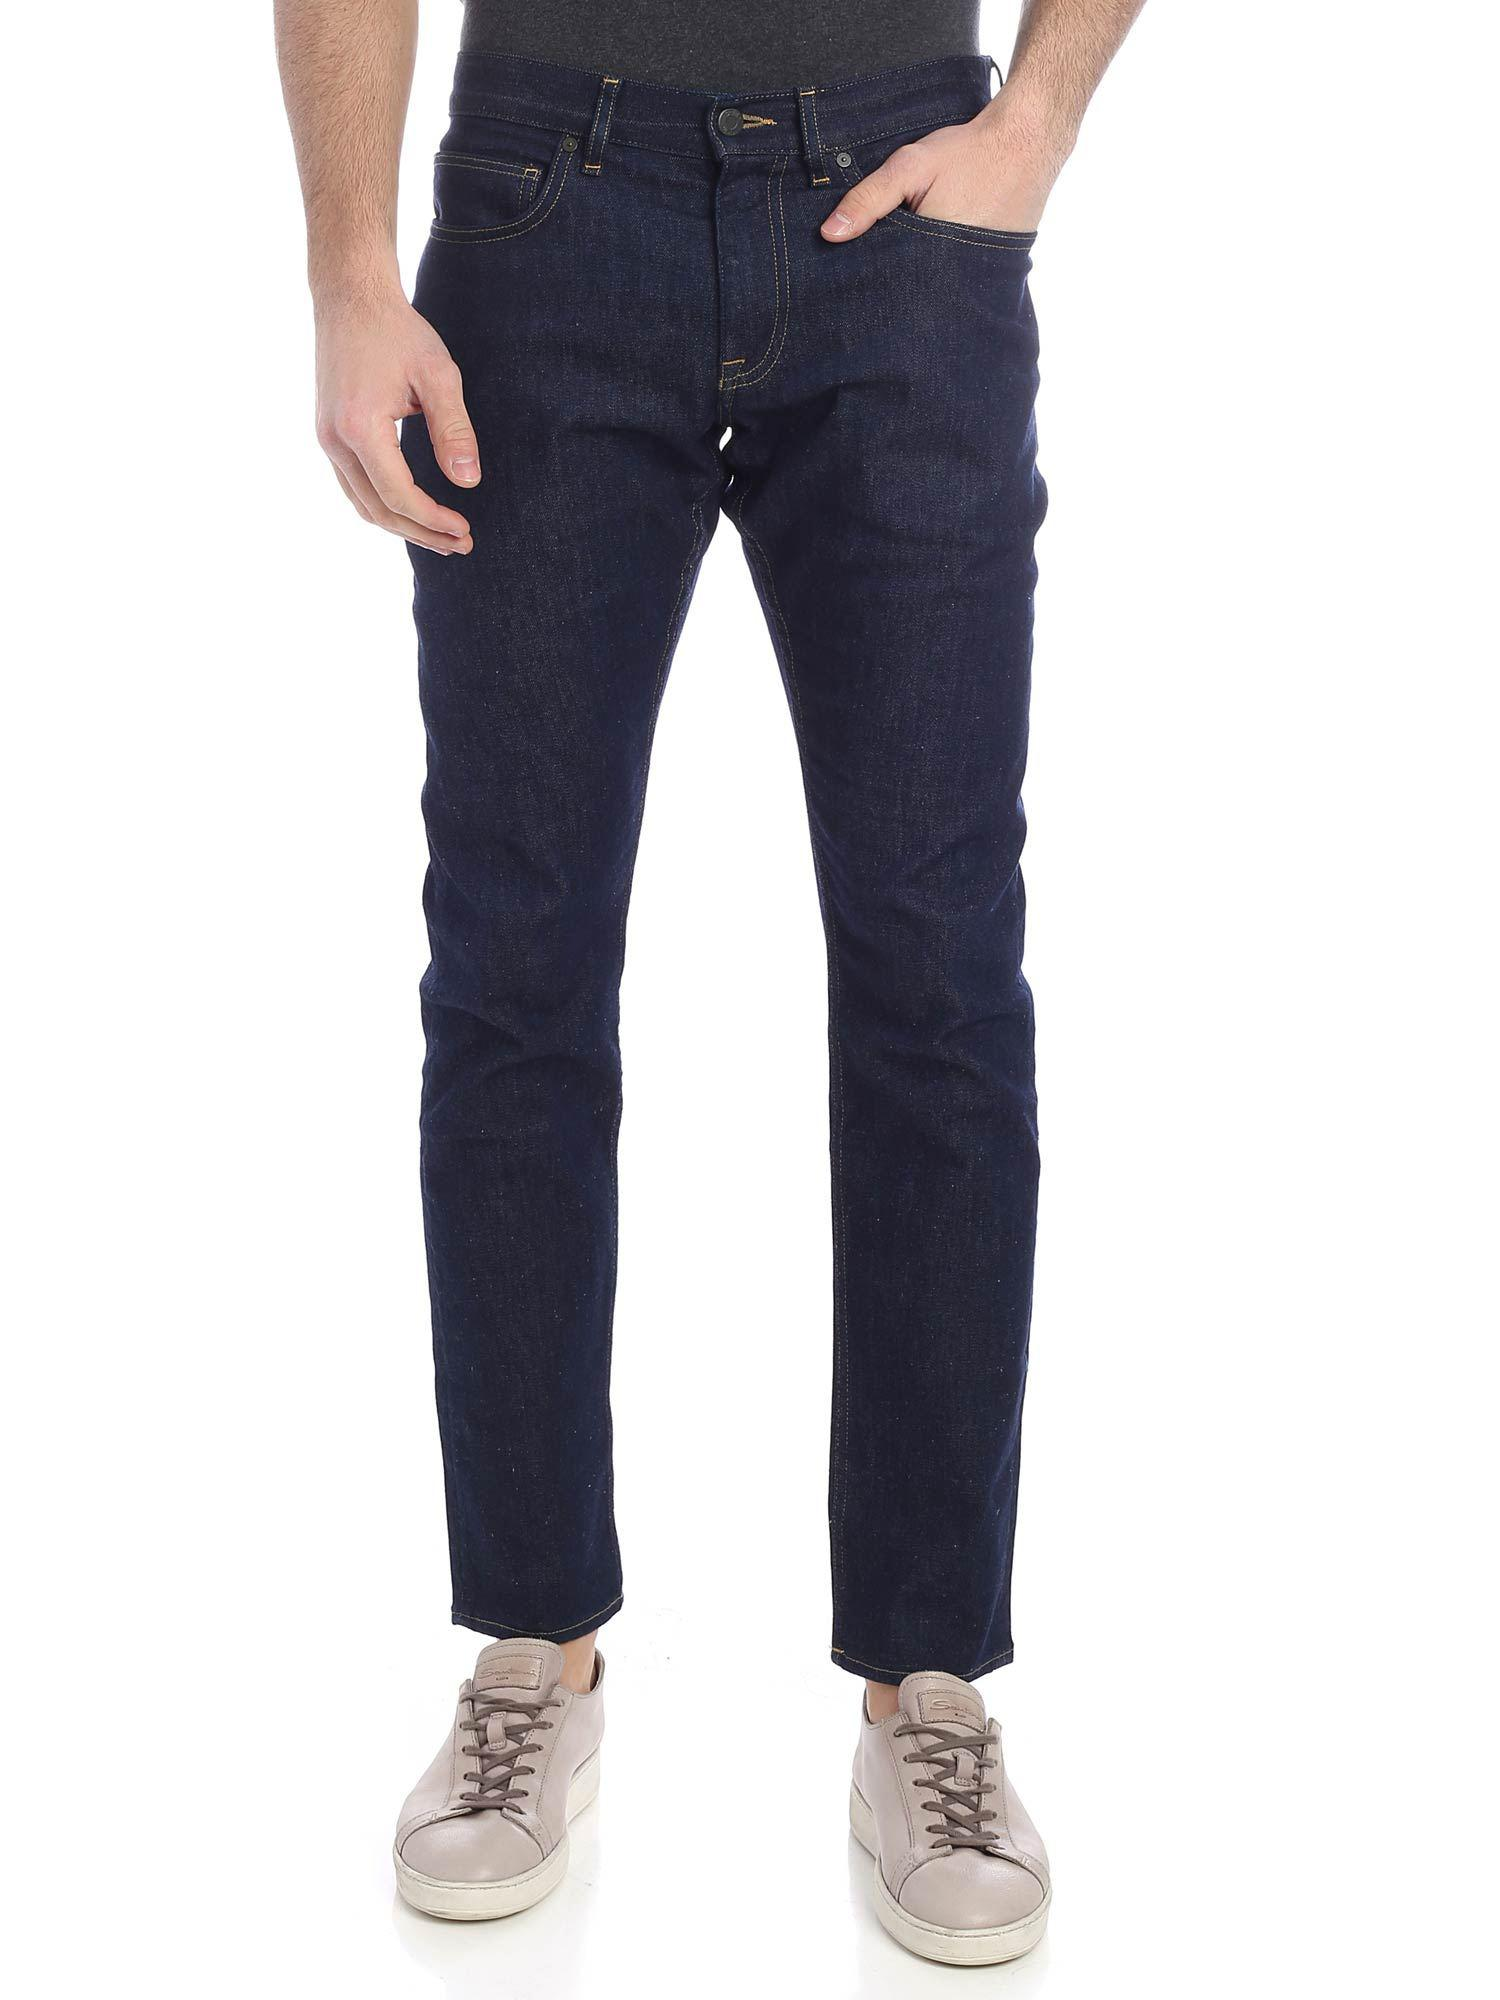 hot-selling clearance great variety styles in stock Calvin Klein 5 Pocket Dark Blue Jeans for Men - Lyst